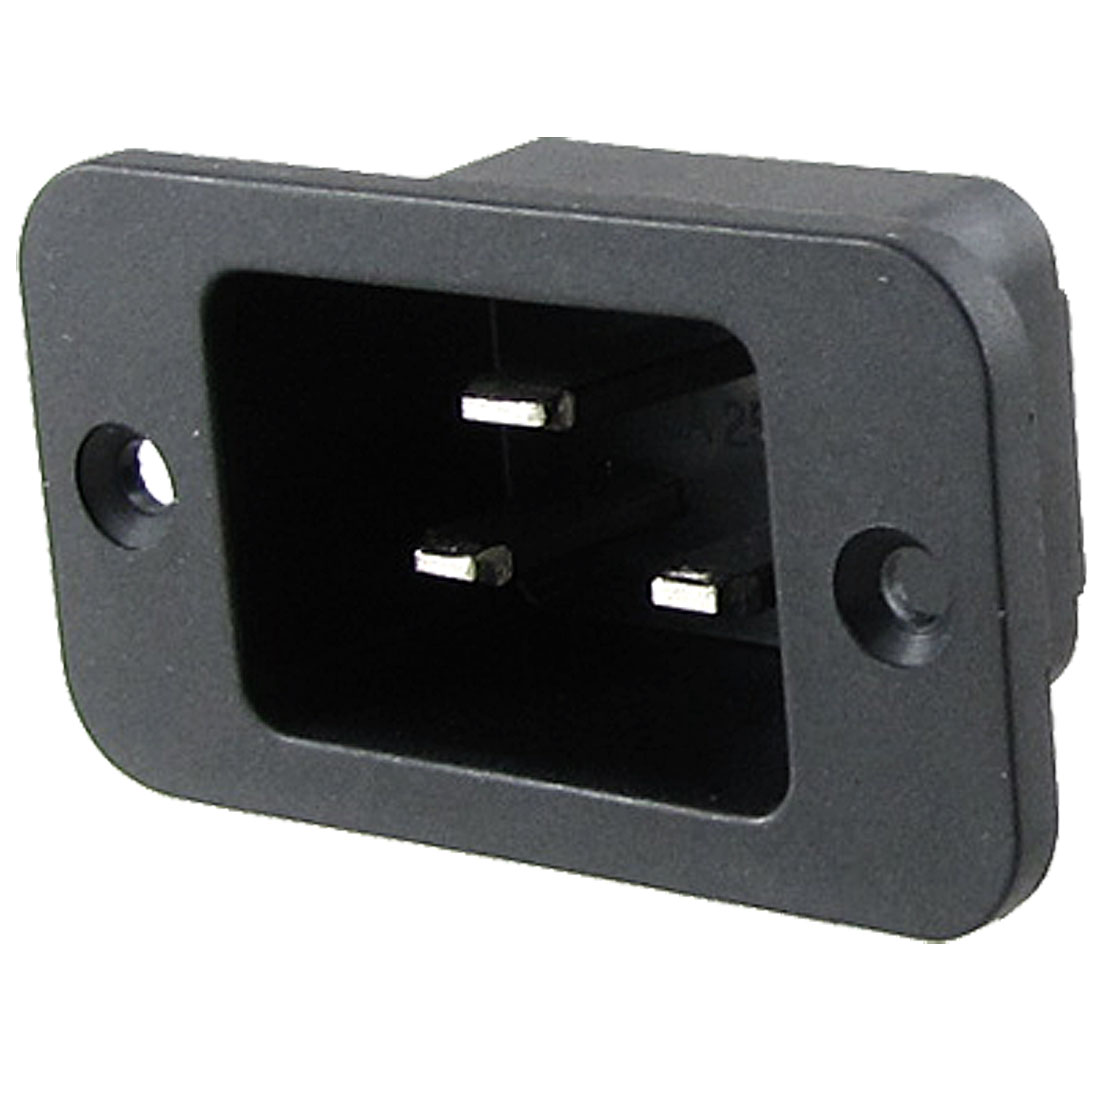 AC 250V 16A 3 Pin Terminals IEC 320 C20 Inlet Power Socket Black